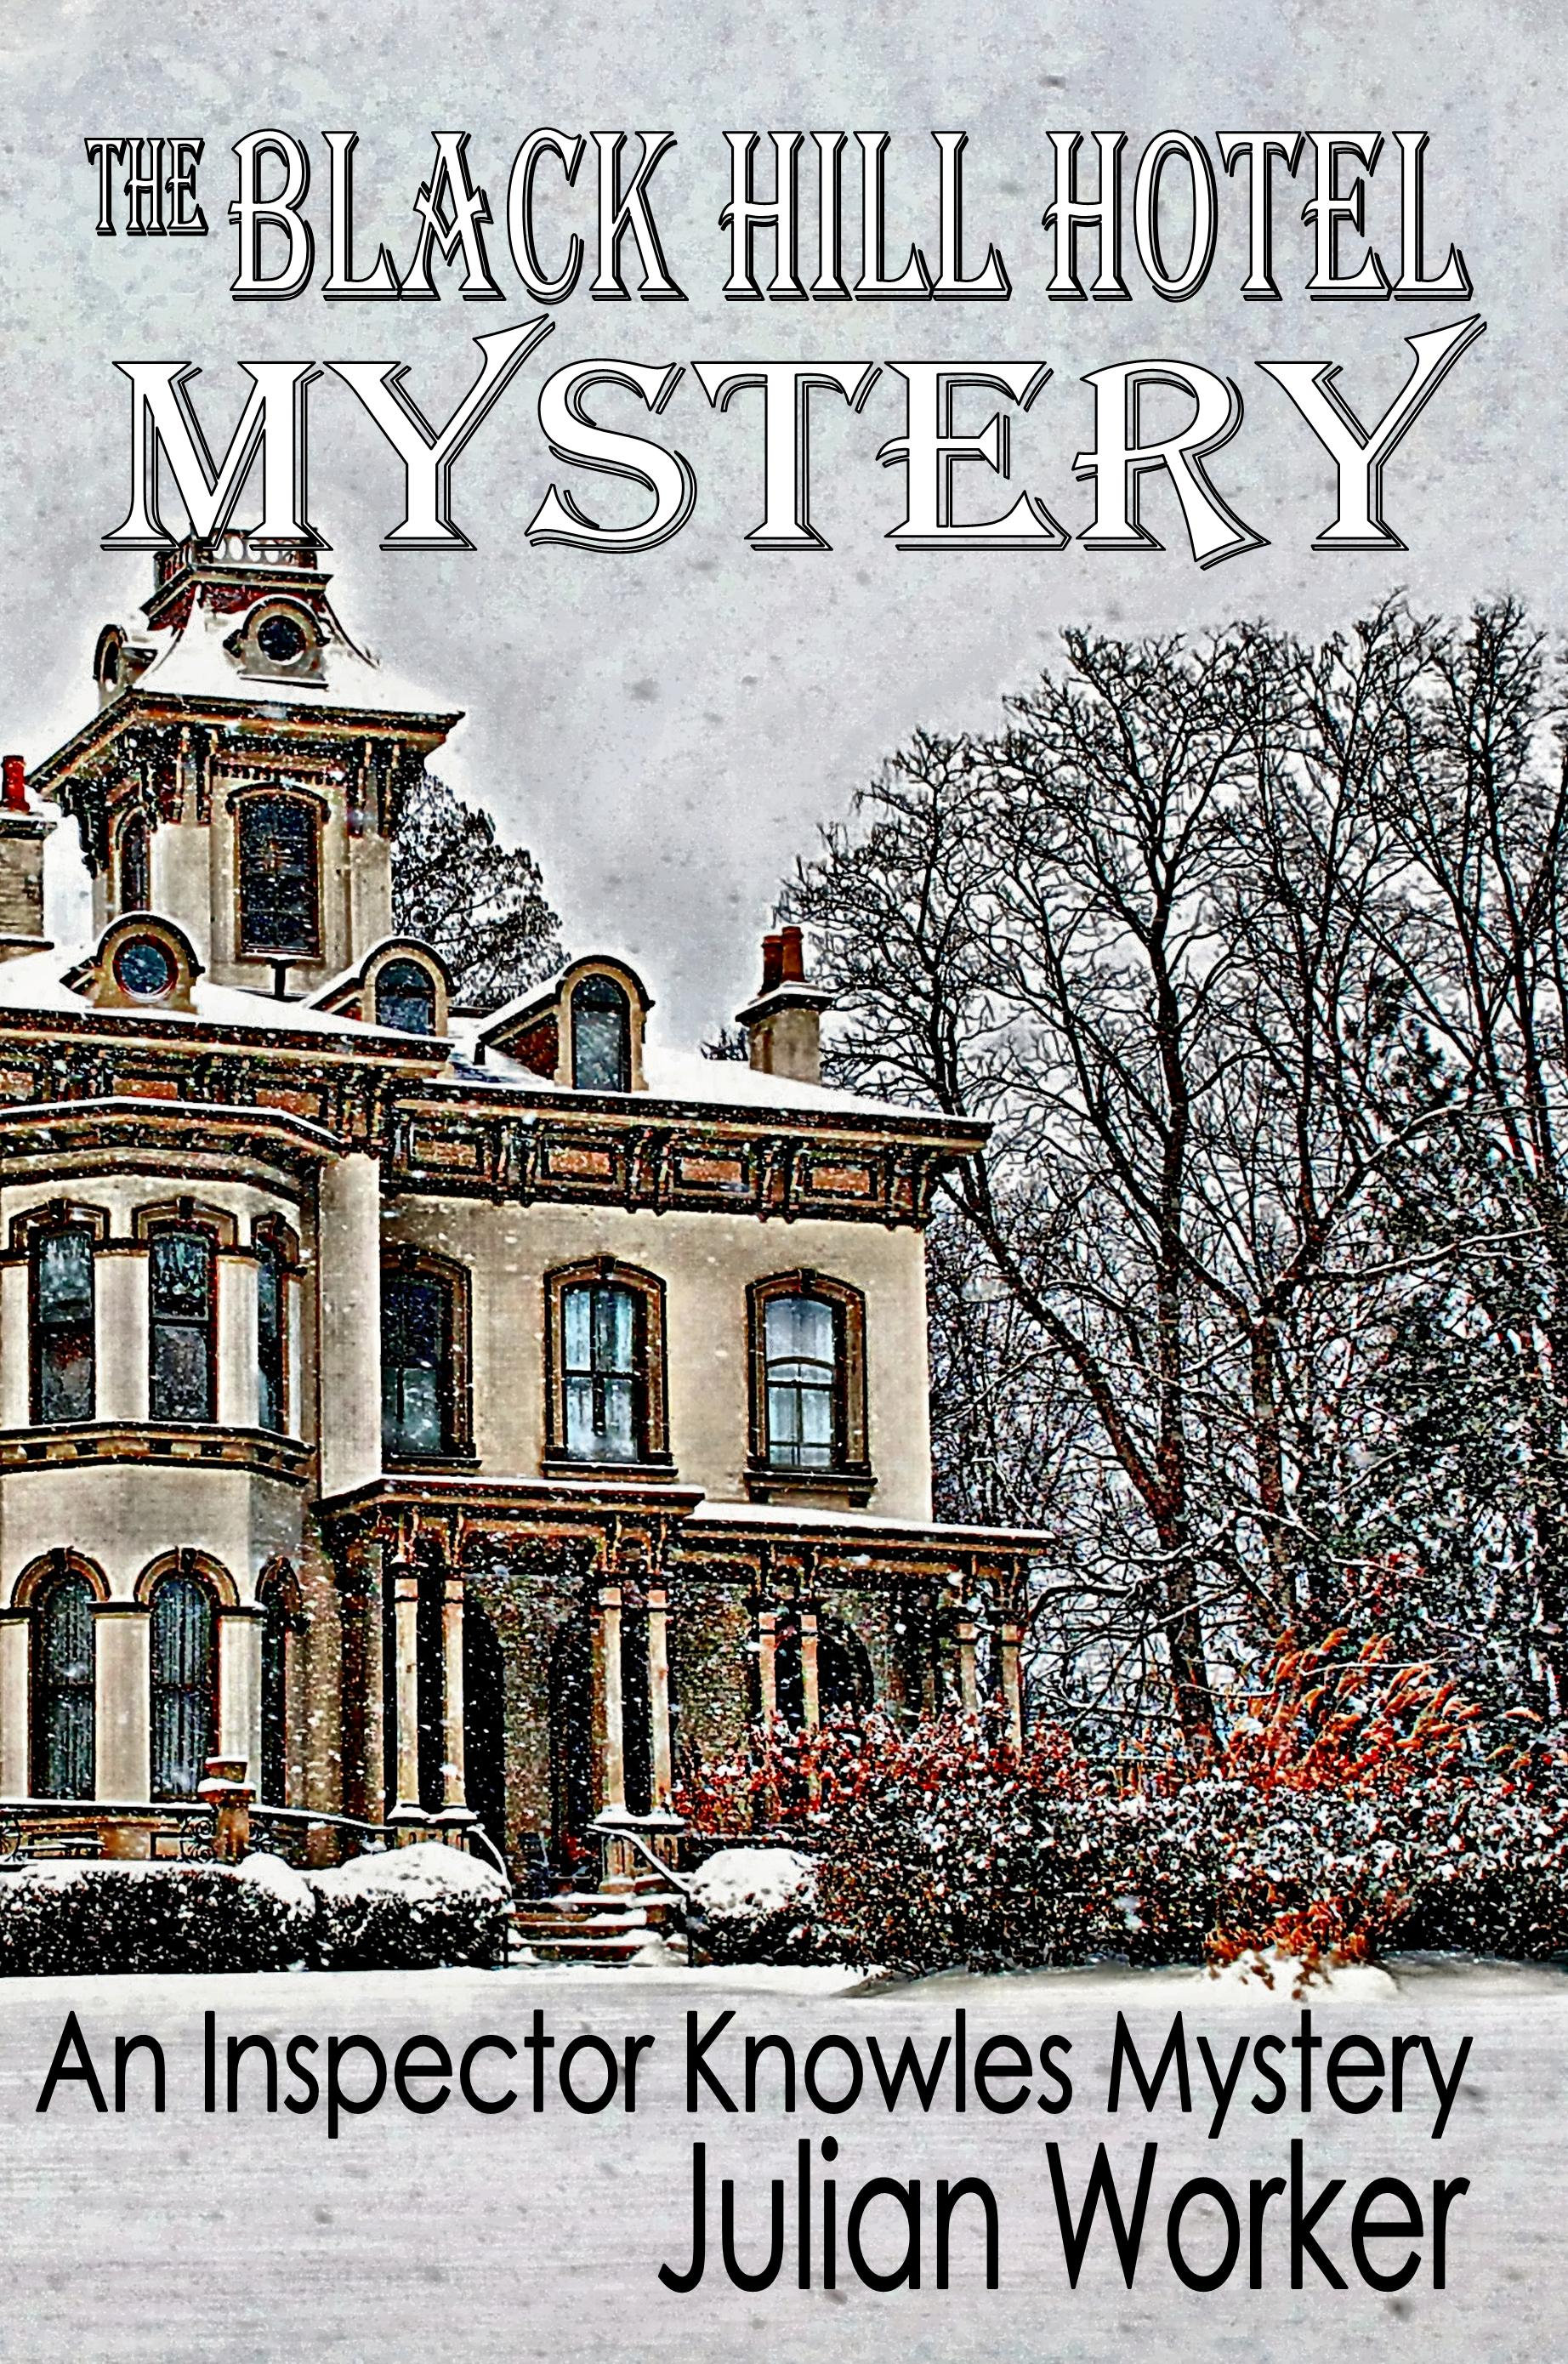 The Black Hill Hotel Mystery – 10